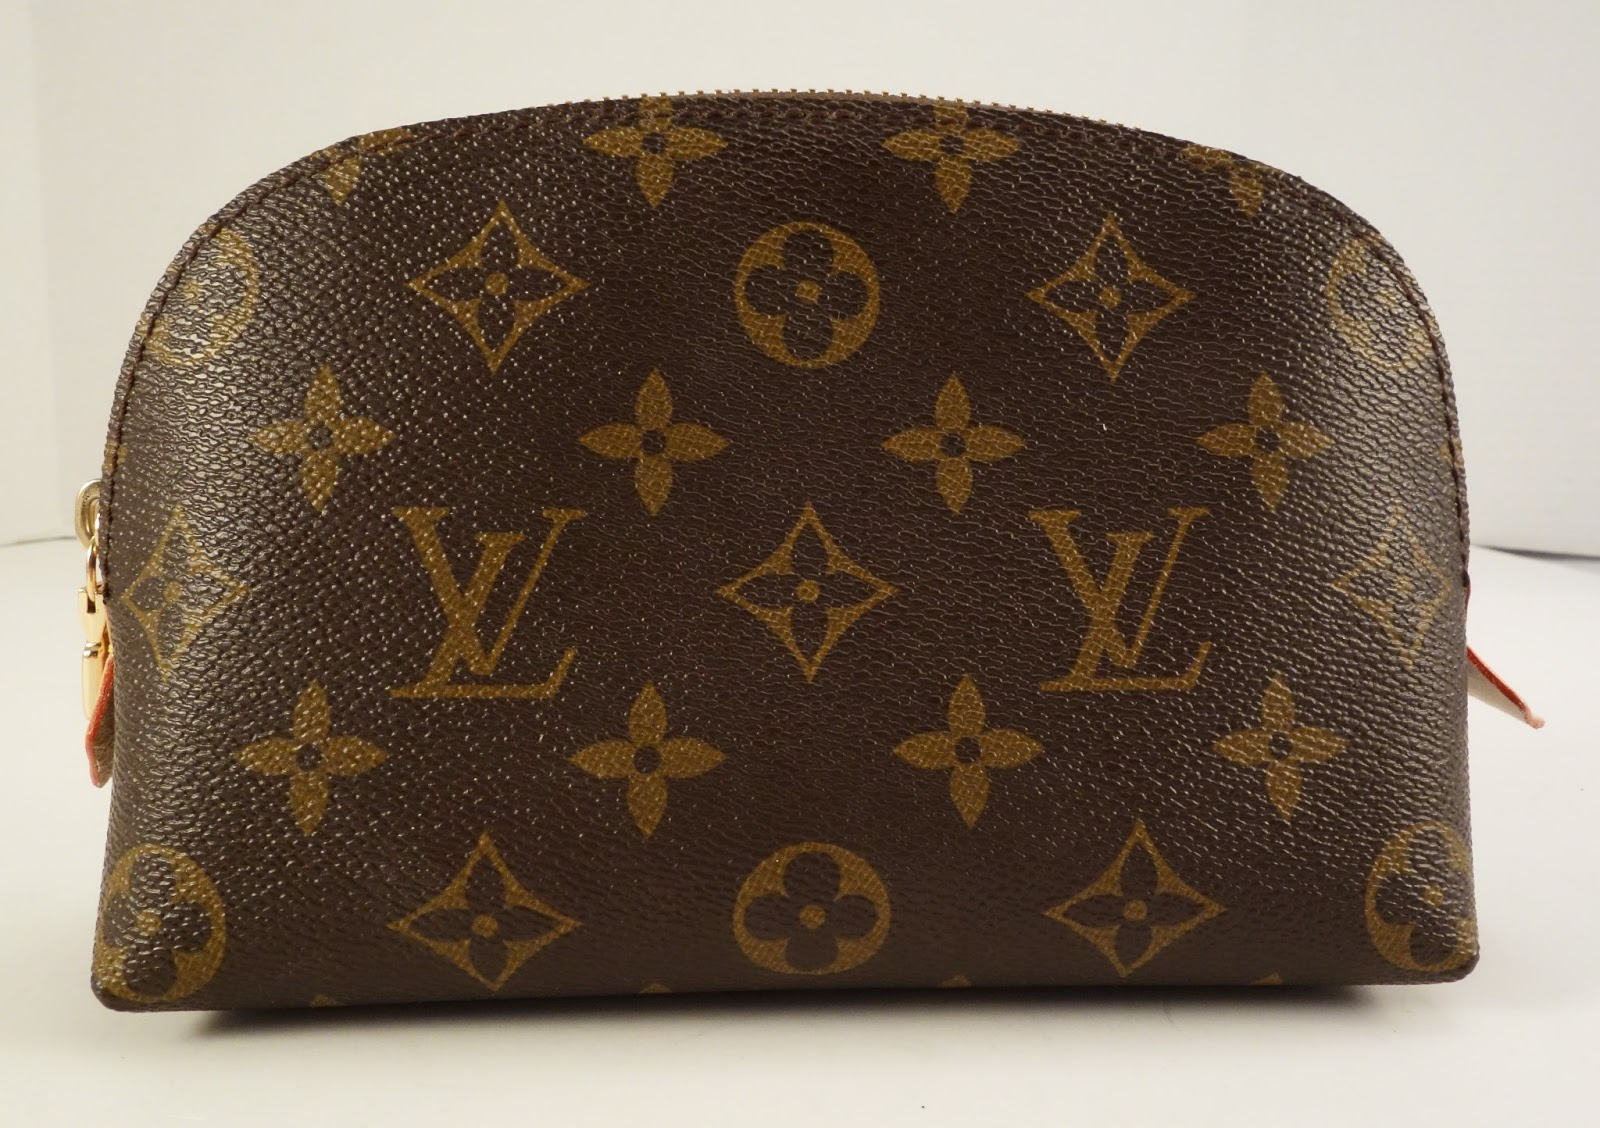 replica louisvuitton handbag replica chloe handbag replica c